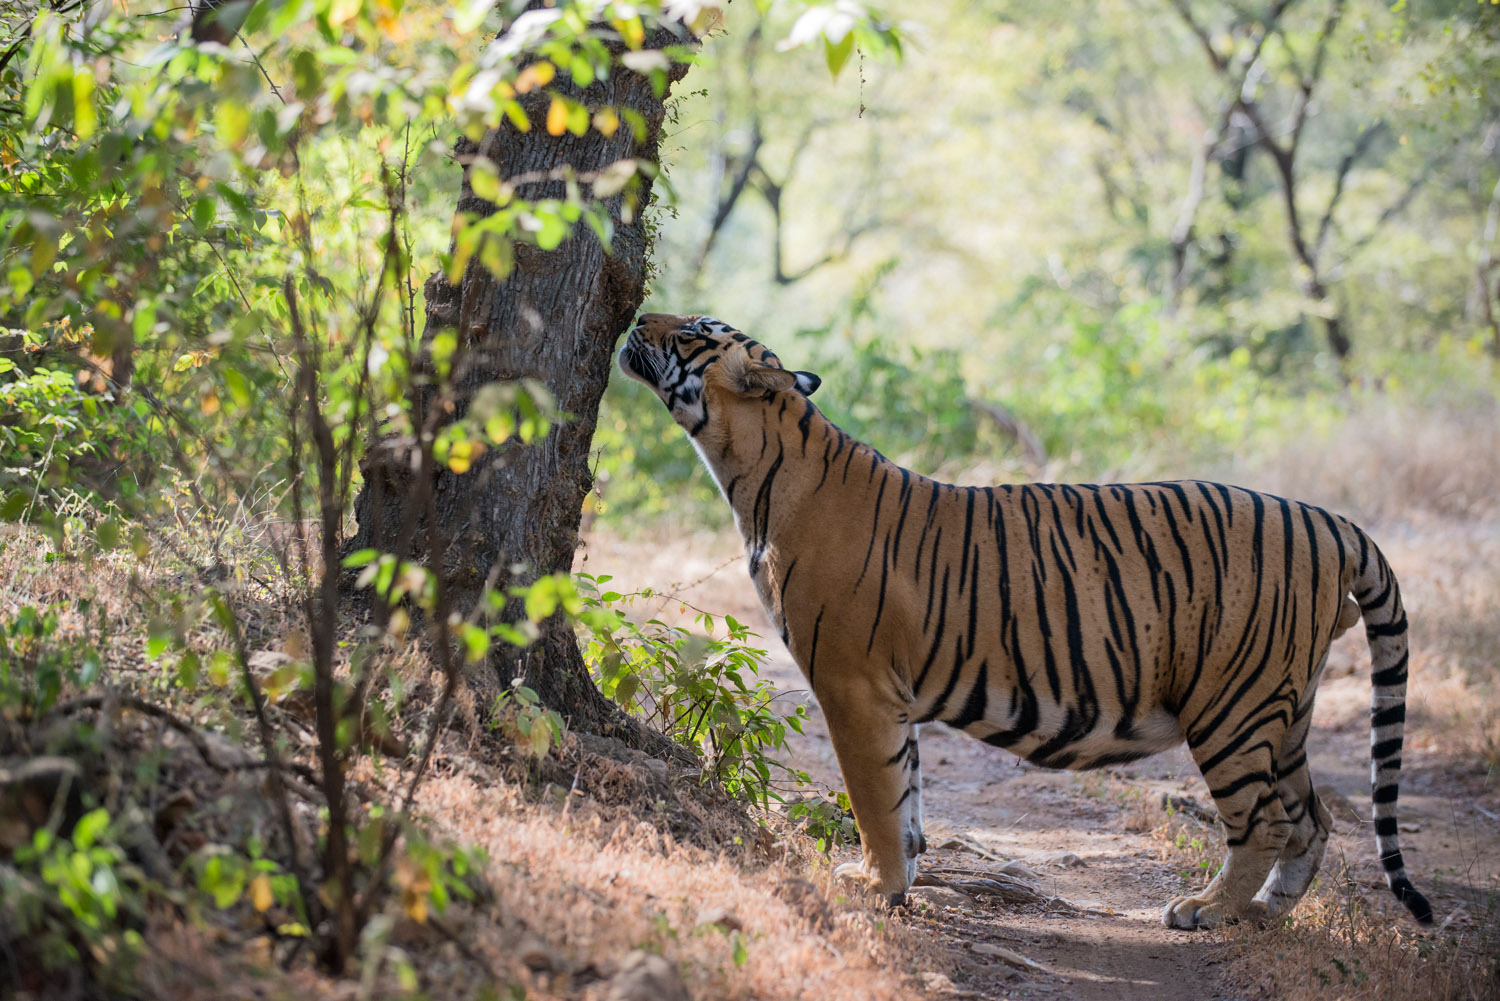 Bengal tiger smelling scent mark on tree, Ranthambhore National Park, Rajasthan, India